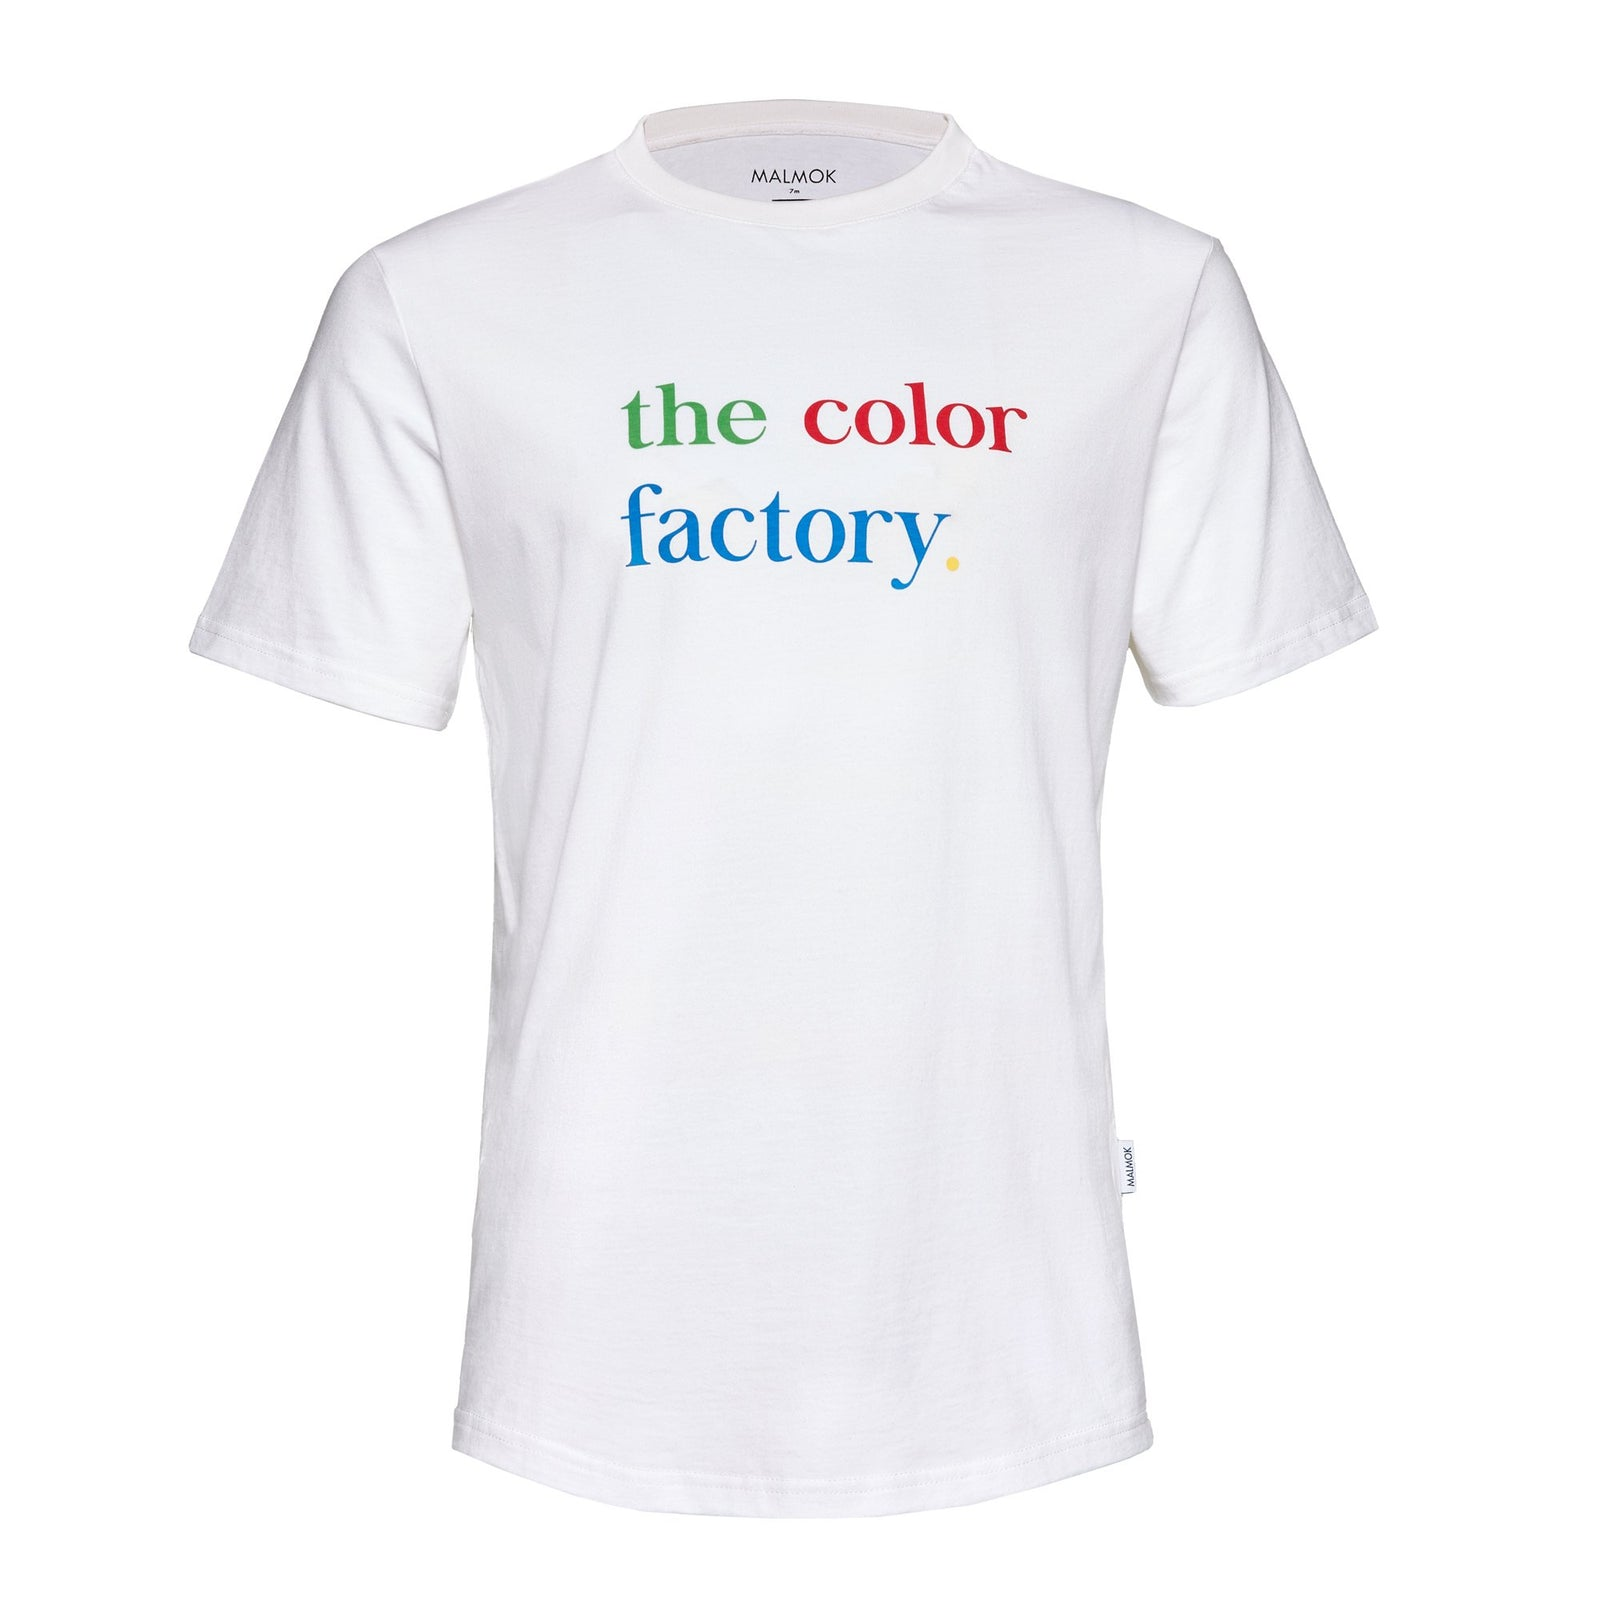 The color T-Shirt